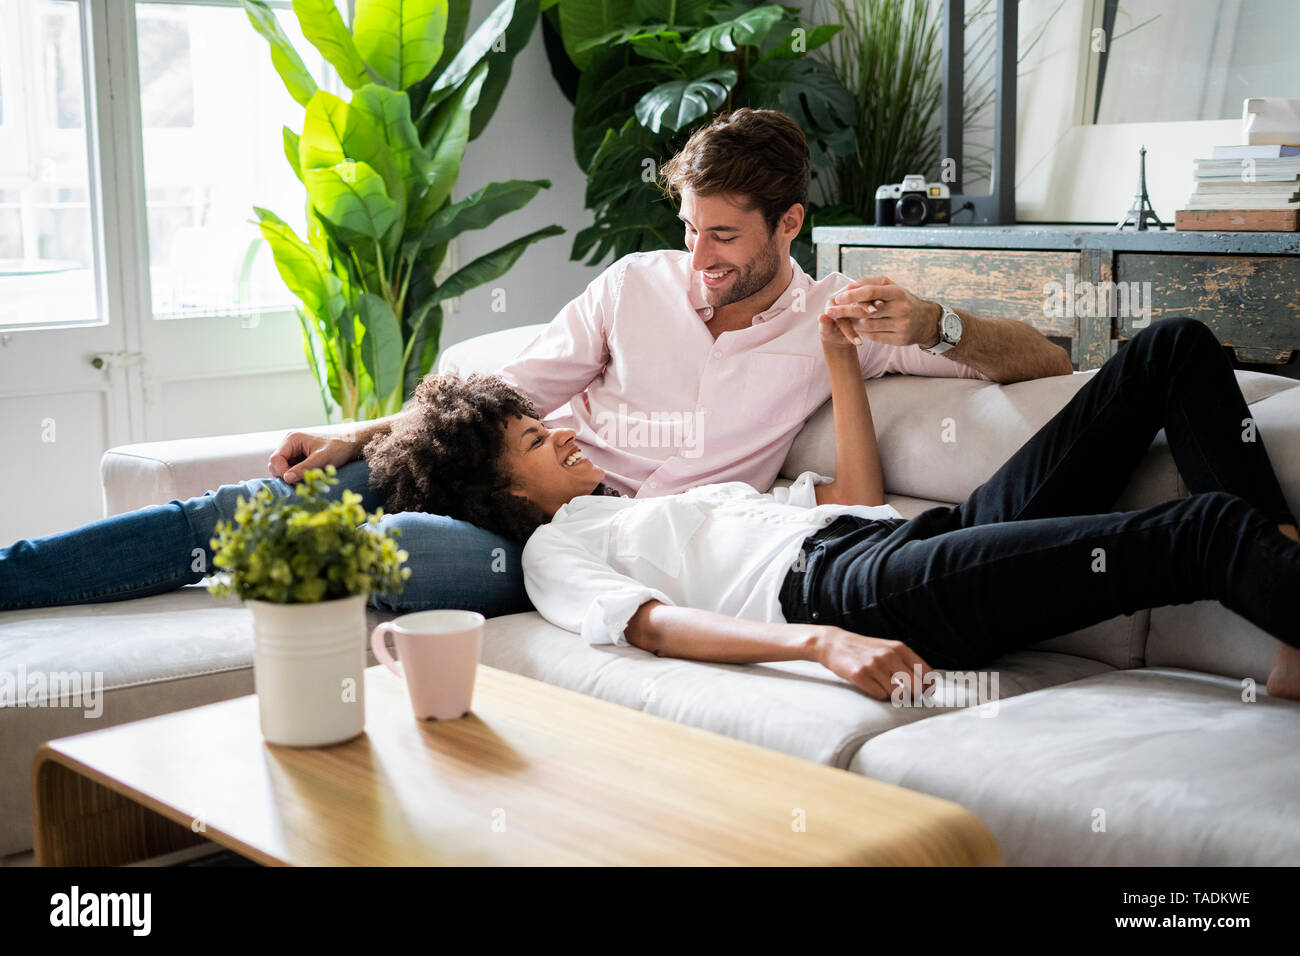 Affectionate couple relaxing on sofa - Stock Image